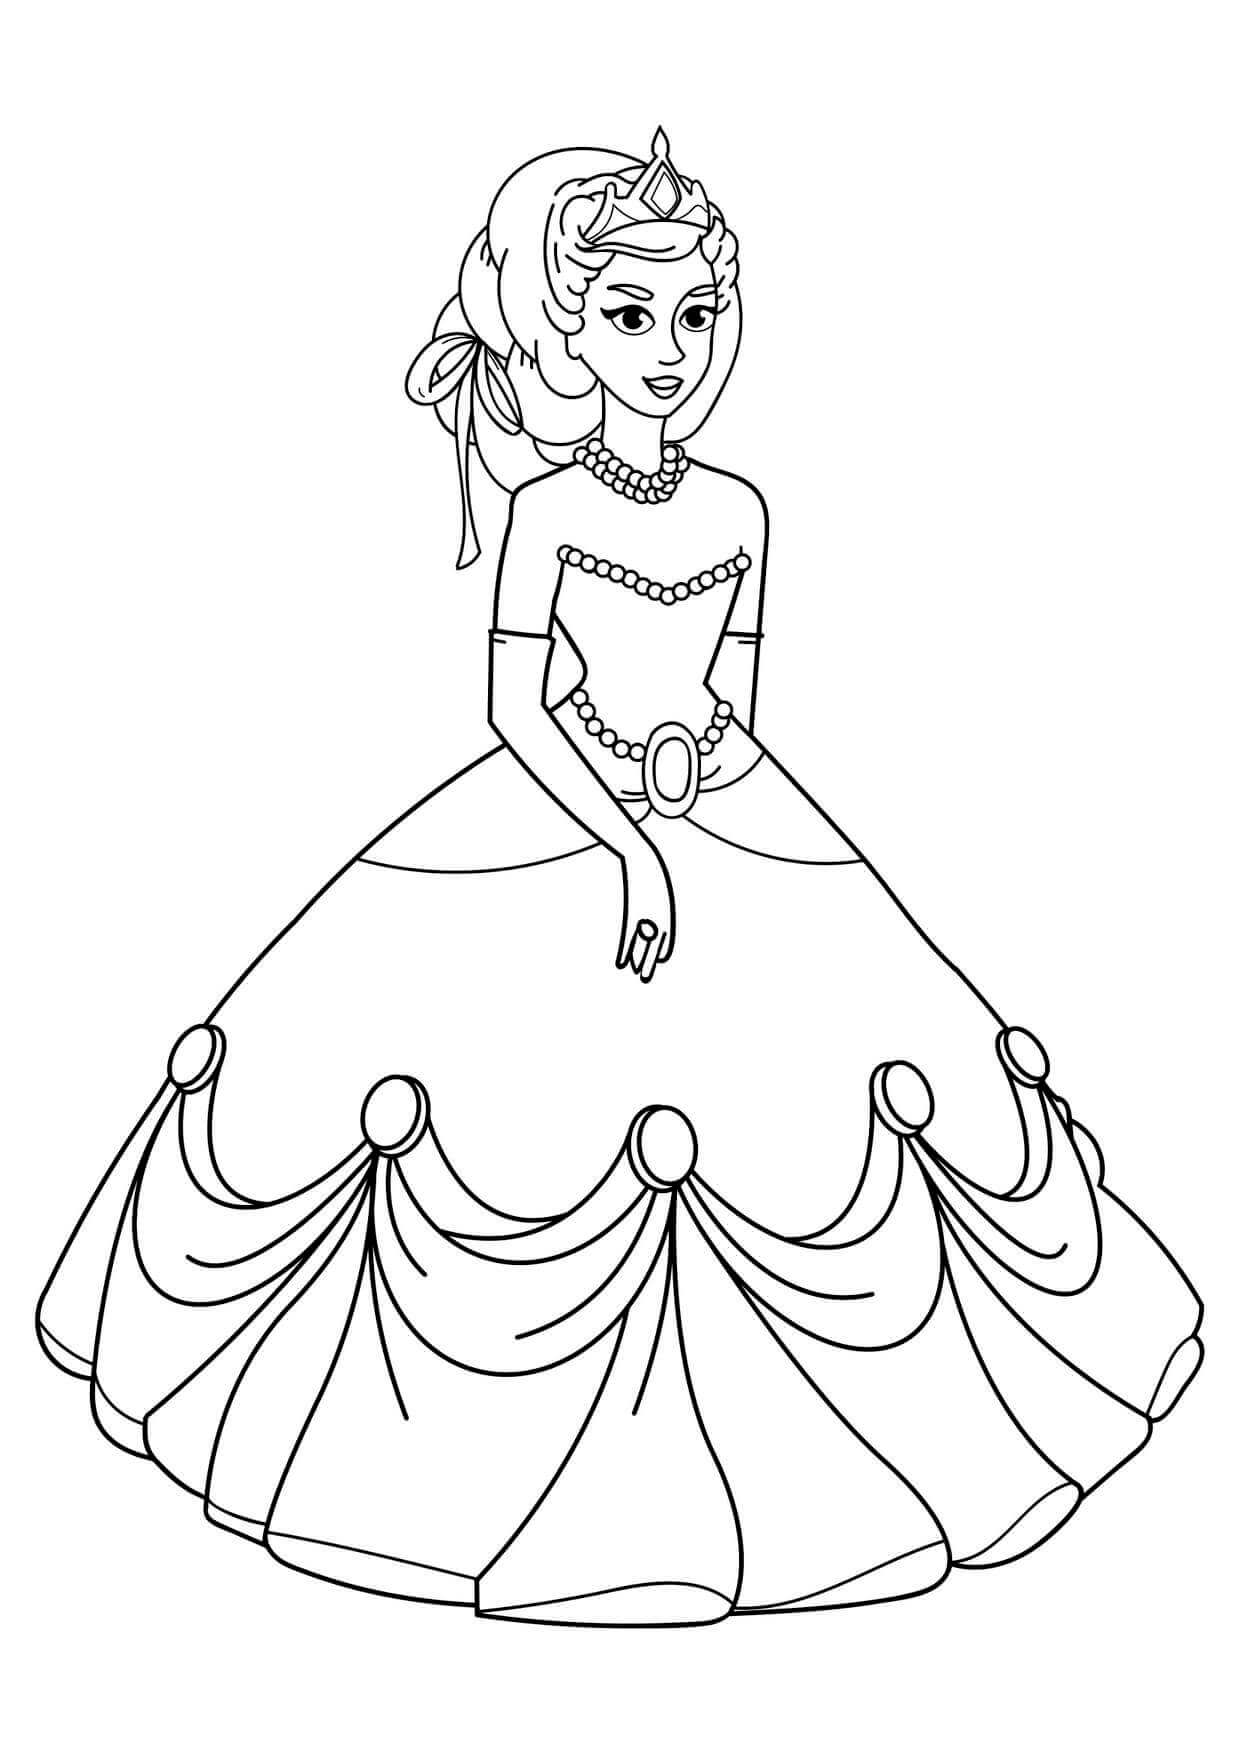 girl coloring books girl coloring pages coloring pages to print books girl coloring